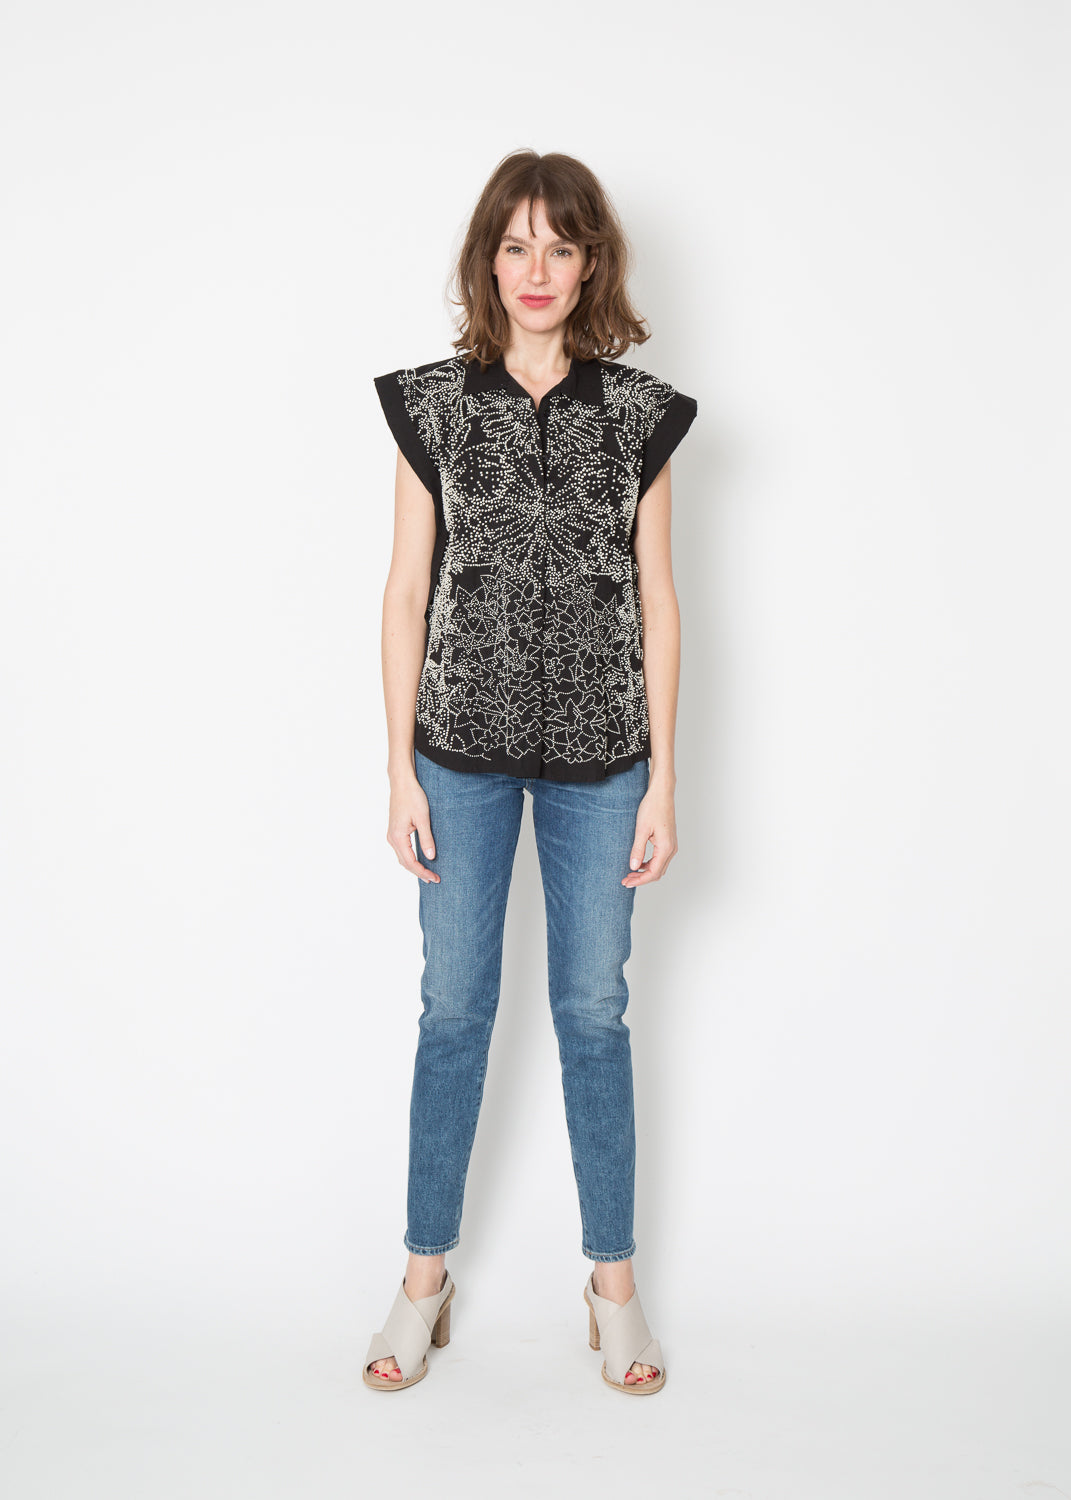 Mii Embroidered Boxy Top Black French Knot